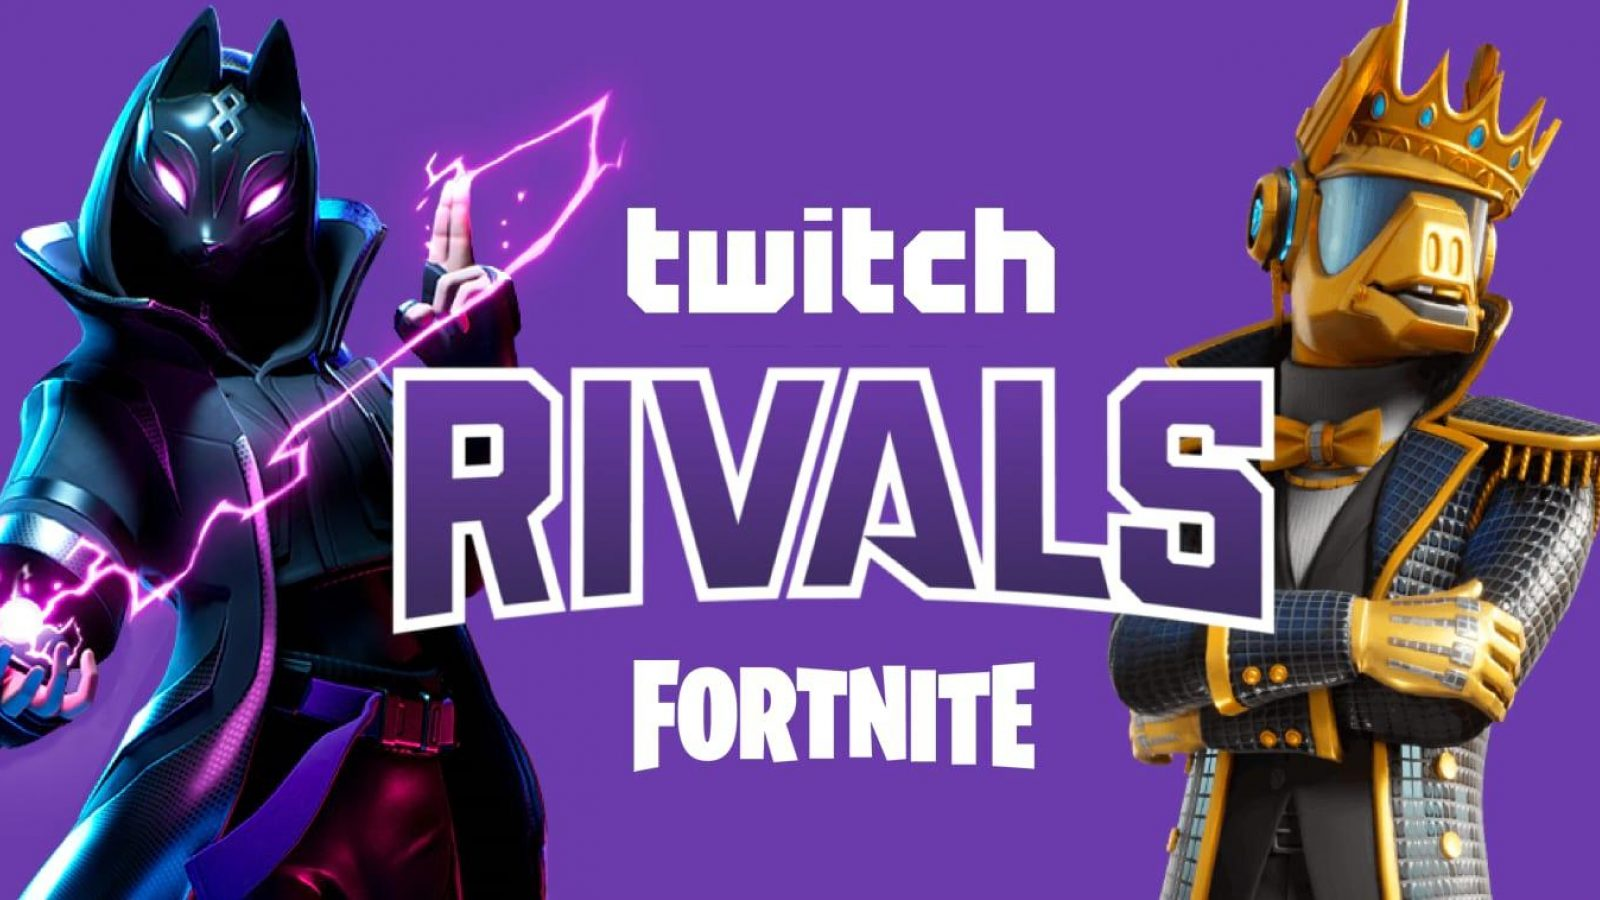 How To Watch The 400 000 Fortnite Twitch Rivals Tourney Schedule Players And More Fortnite Intel